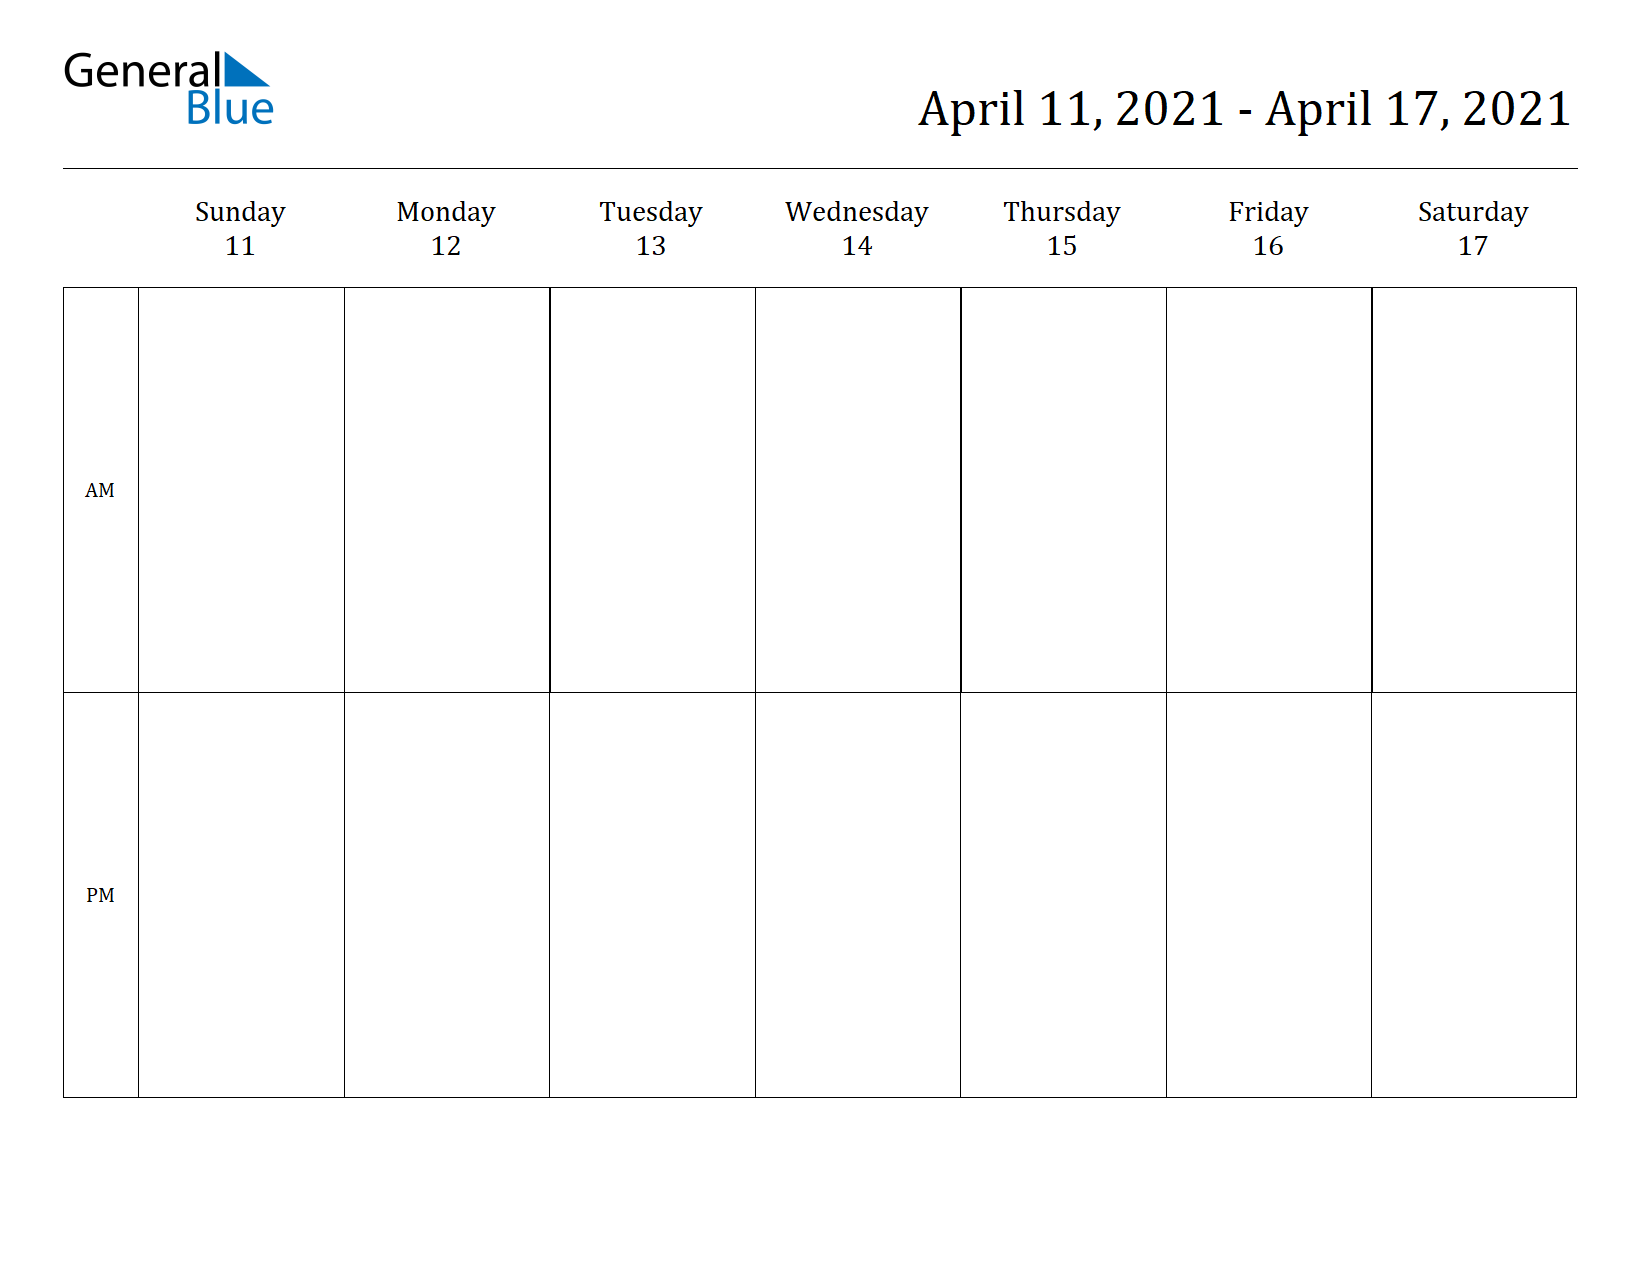 Weekly Calendar for Apr 11, 2021 to Apr 17, 2021